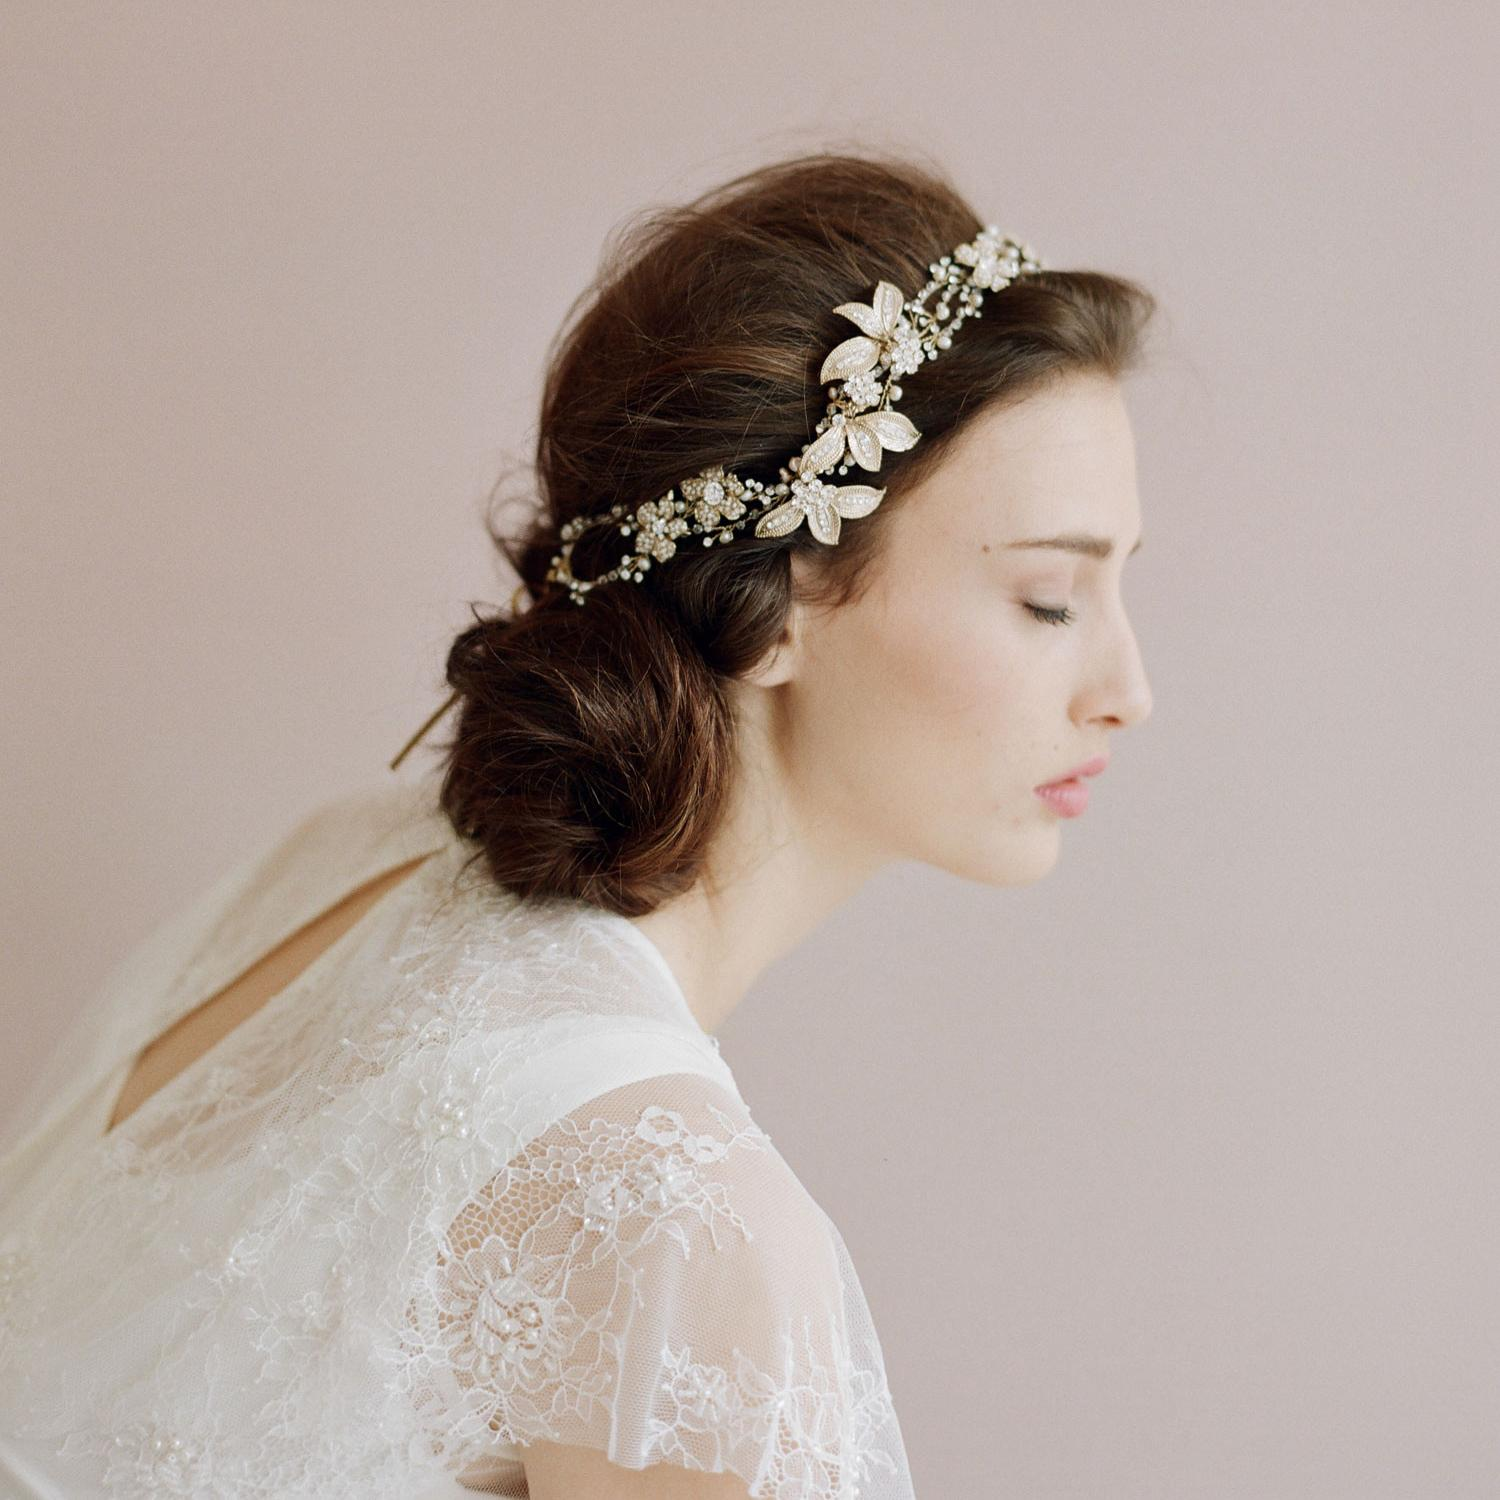 entwined crystal hair vine petals wedding headband bride